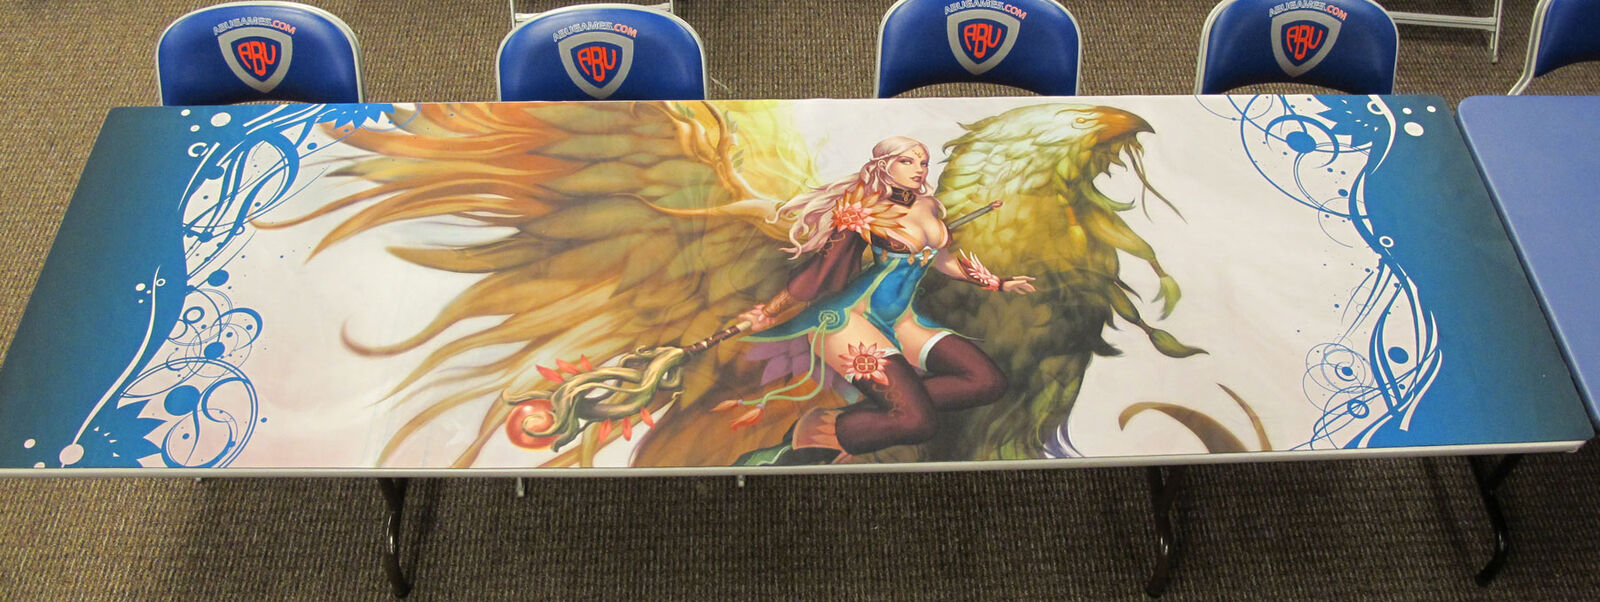 Life Table Playmat Game Plus Products   HCD HCD HCD GAMING SUPPLY BRAND NEW ABUGames b1e3d7